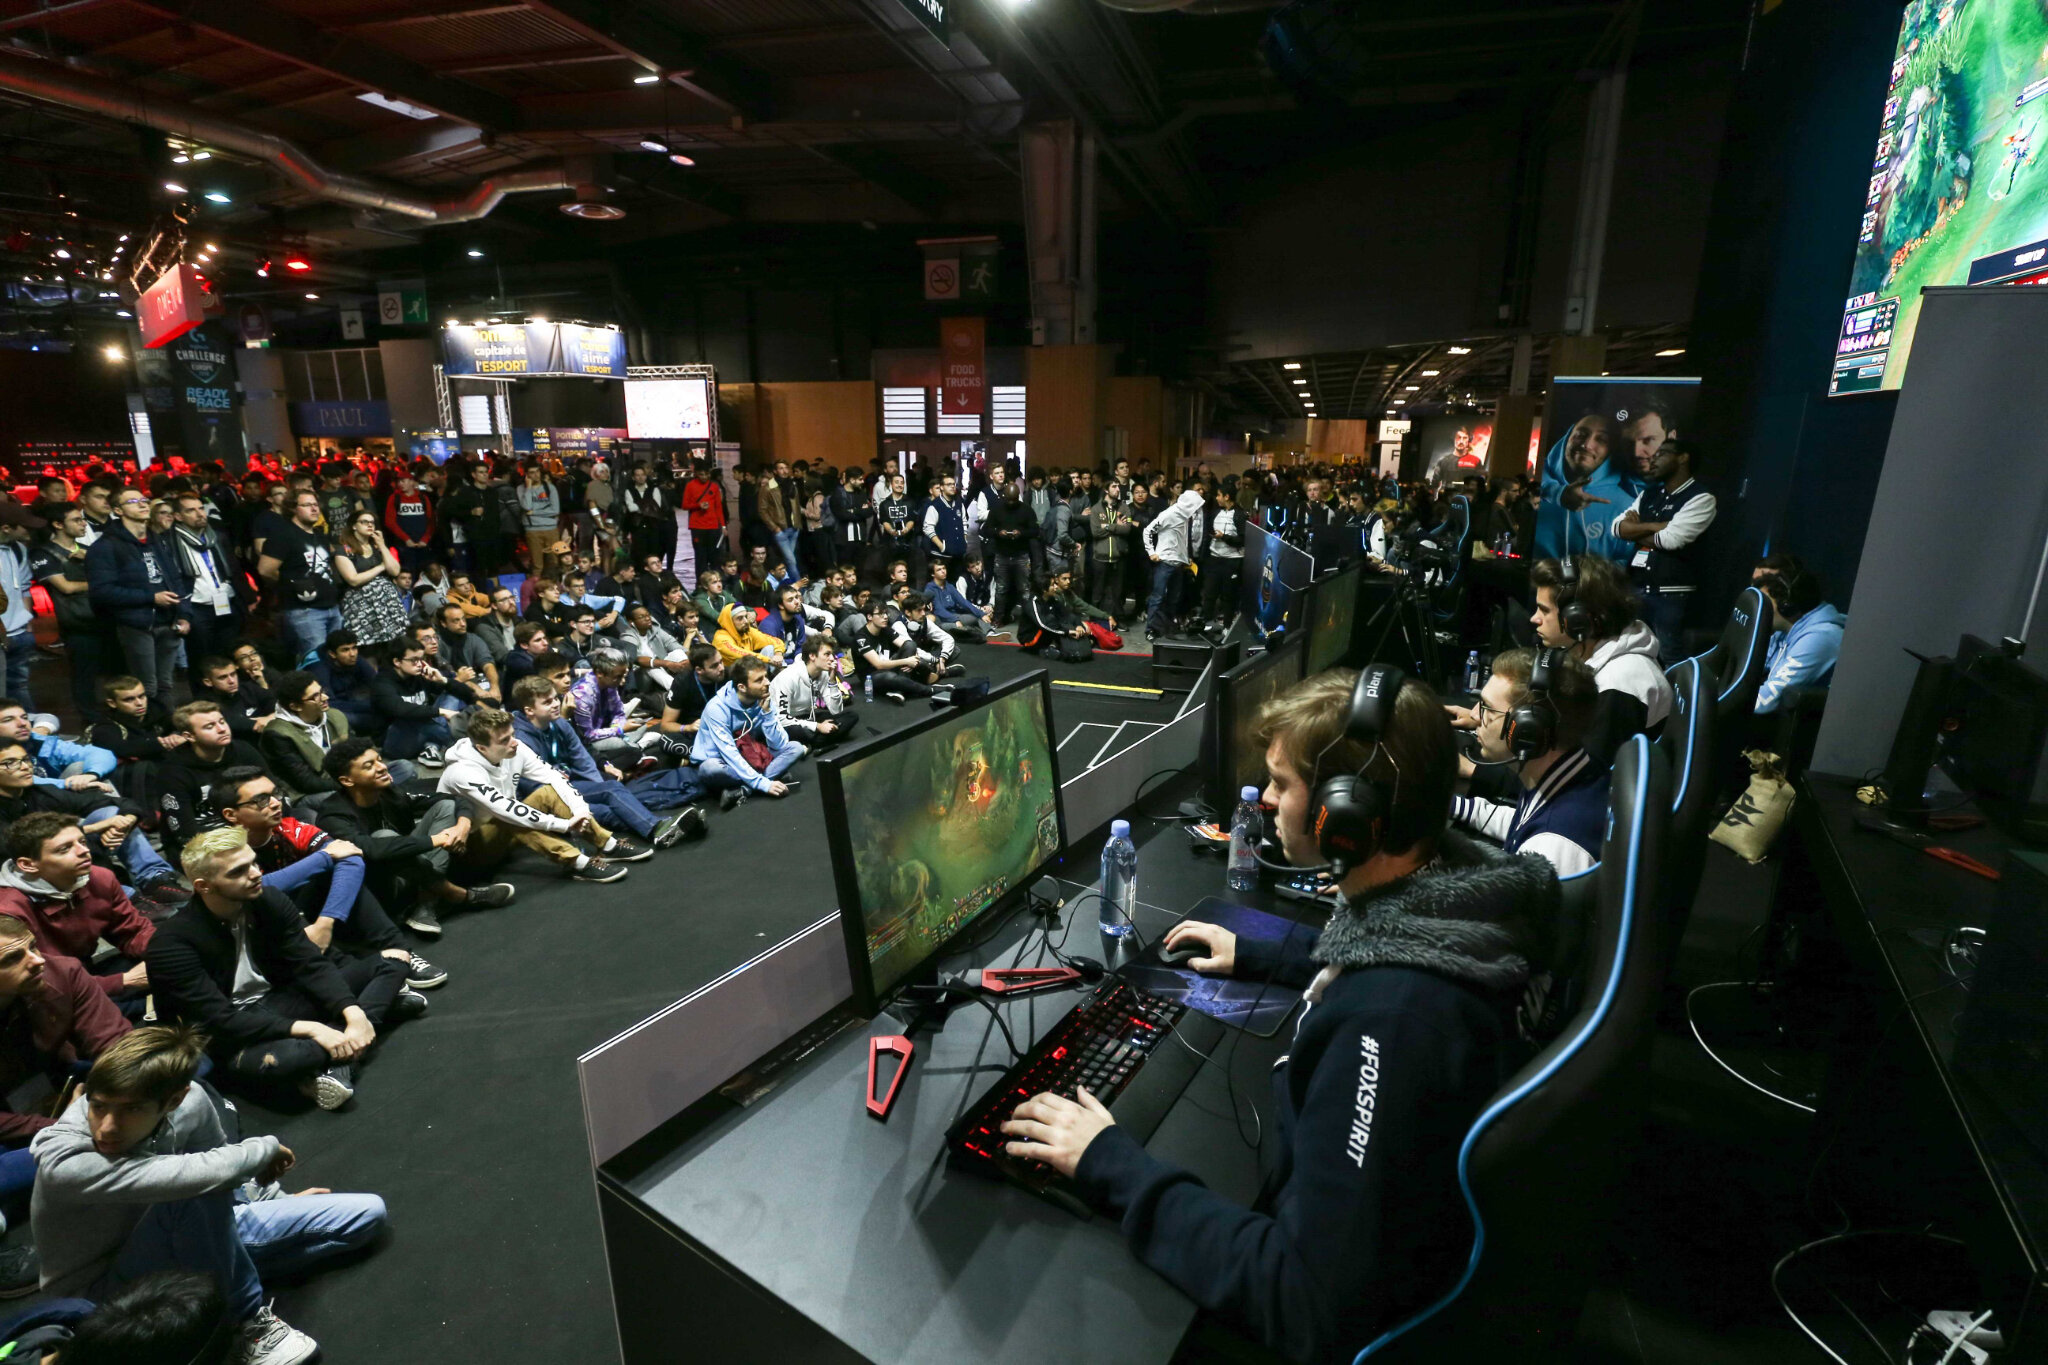 Paris Games Week 2018 : l'inexorable essor du jeu vidéo en France. © Michel Stoupak. Ven 26.10.2018, 09h44m37.